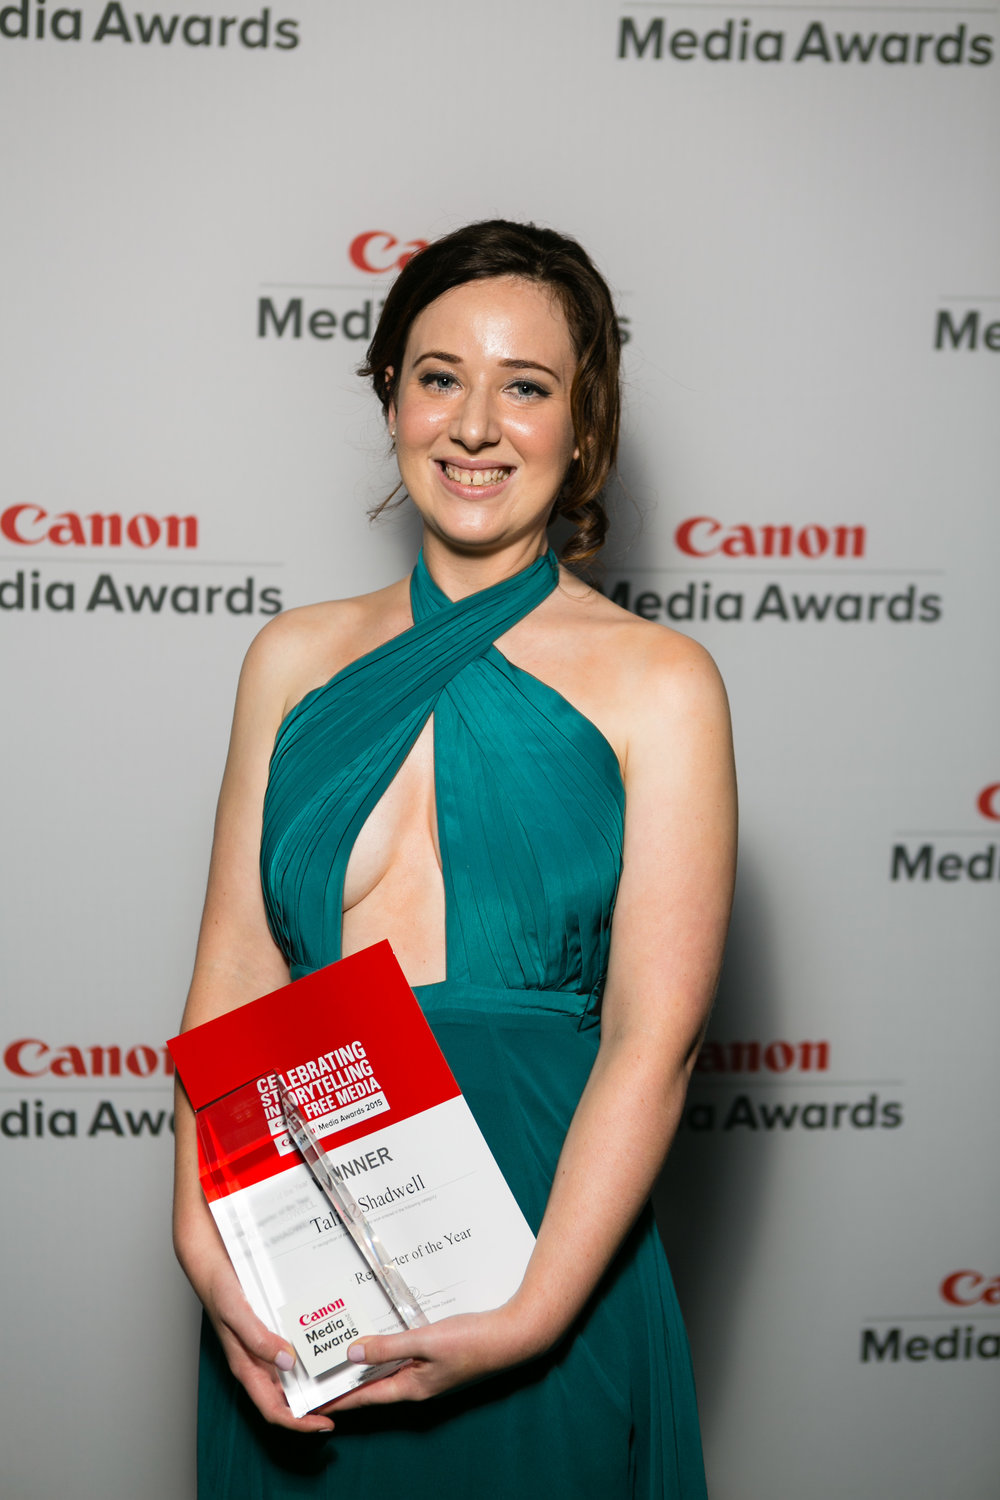 canon_media_awards_2015_interlike_nz_clinton_tudor-5941-194.jpg